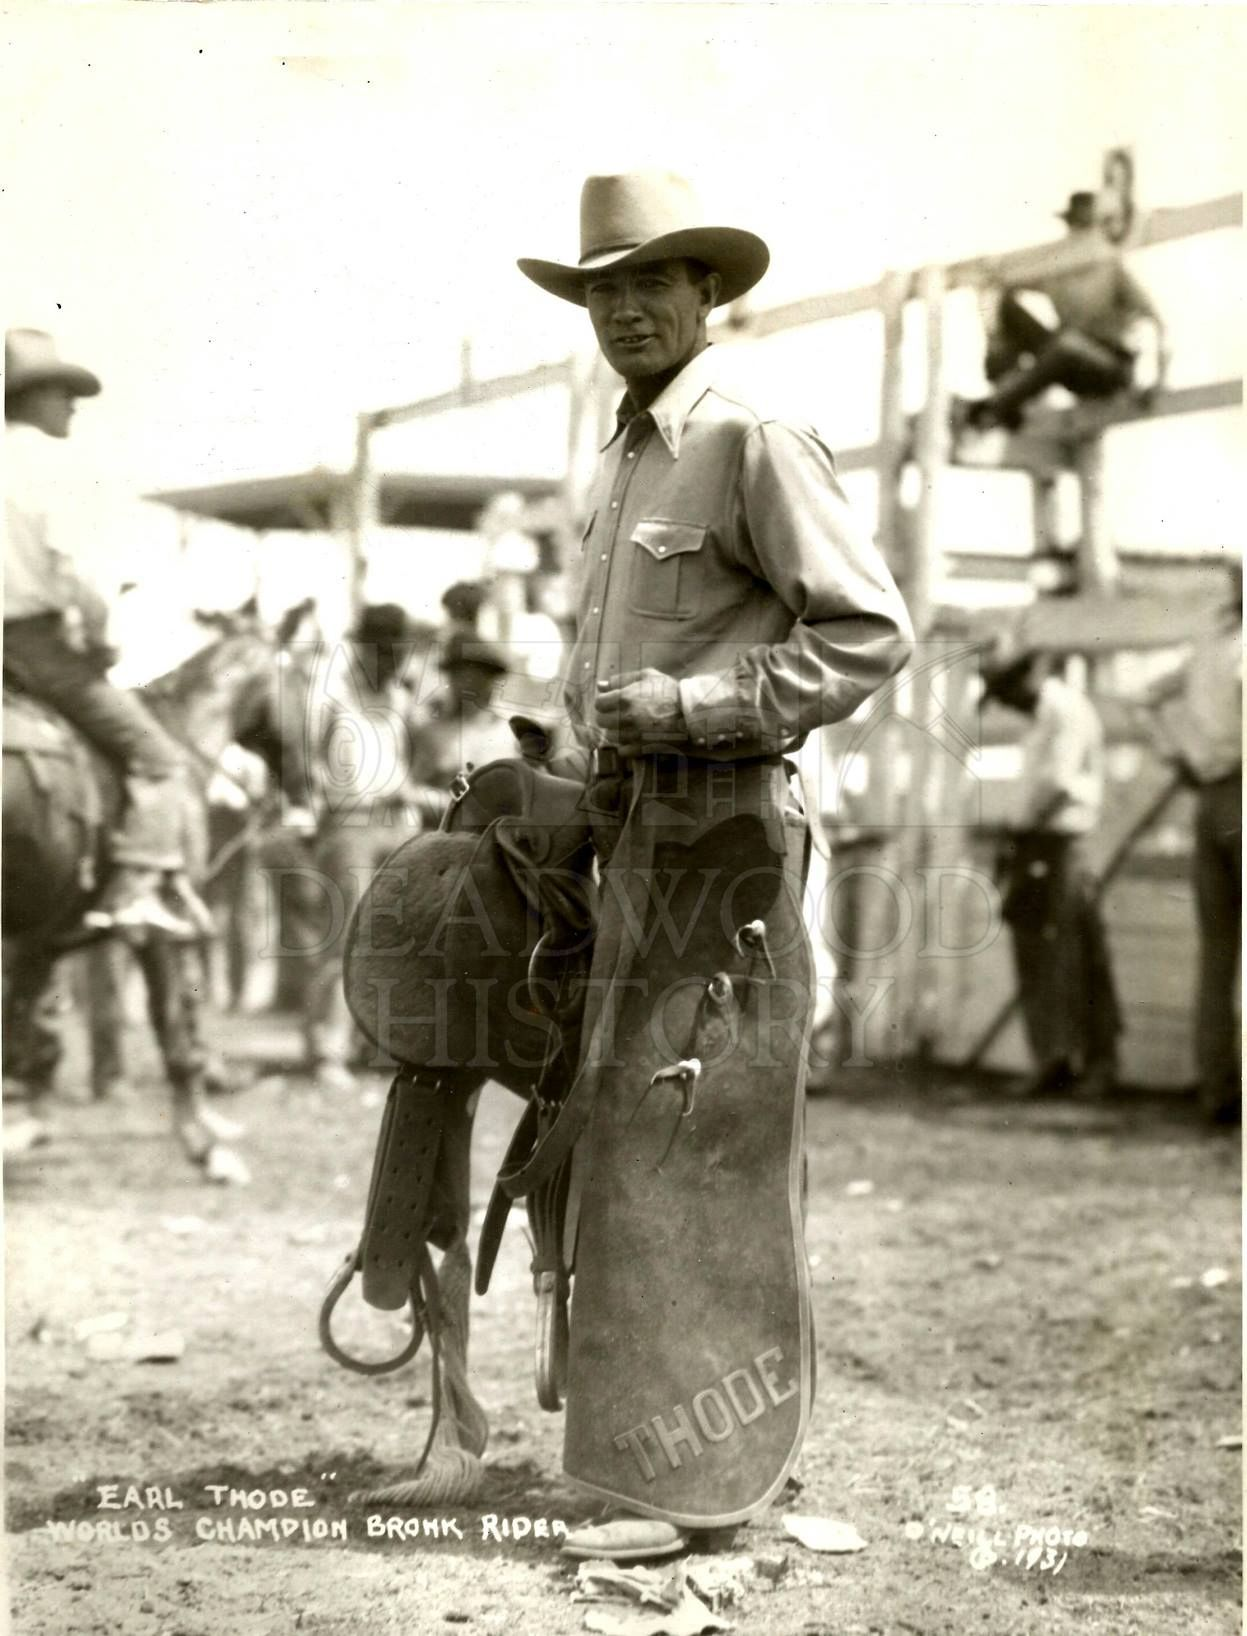 World's Champion Bronc Rider, Earl Thode, stands in his